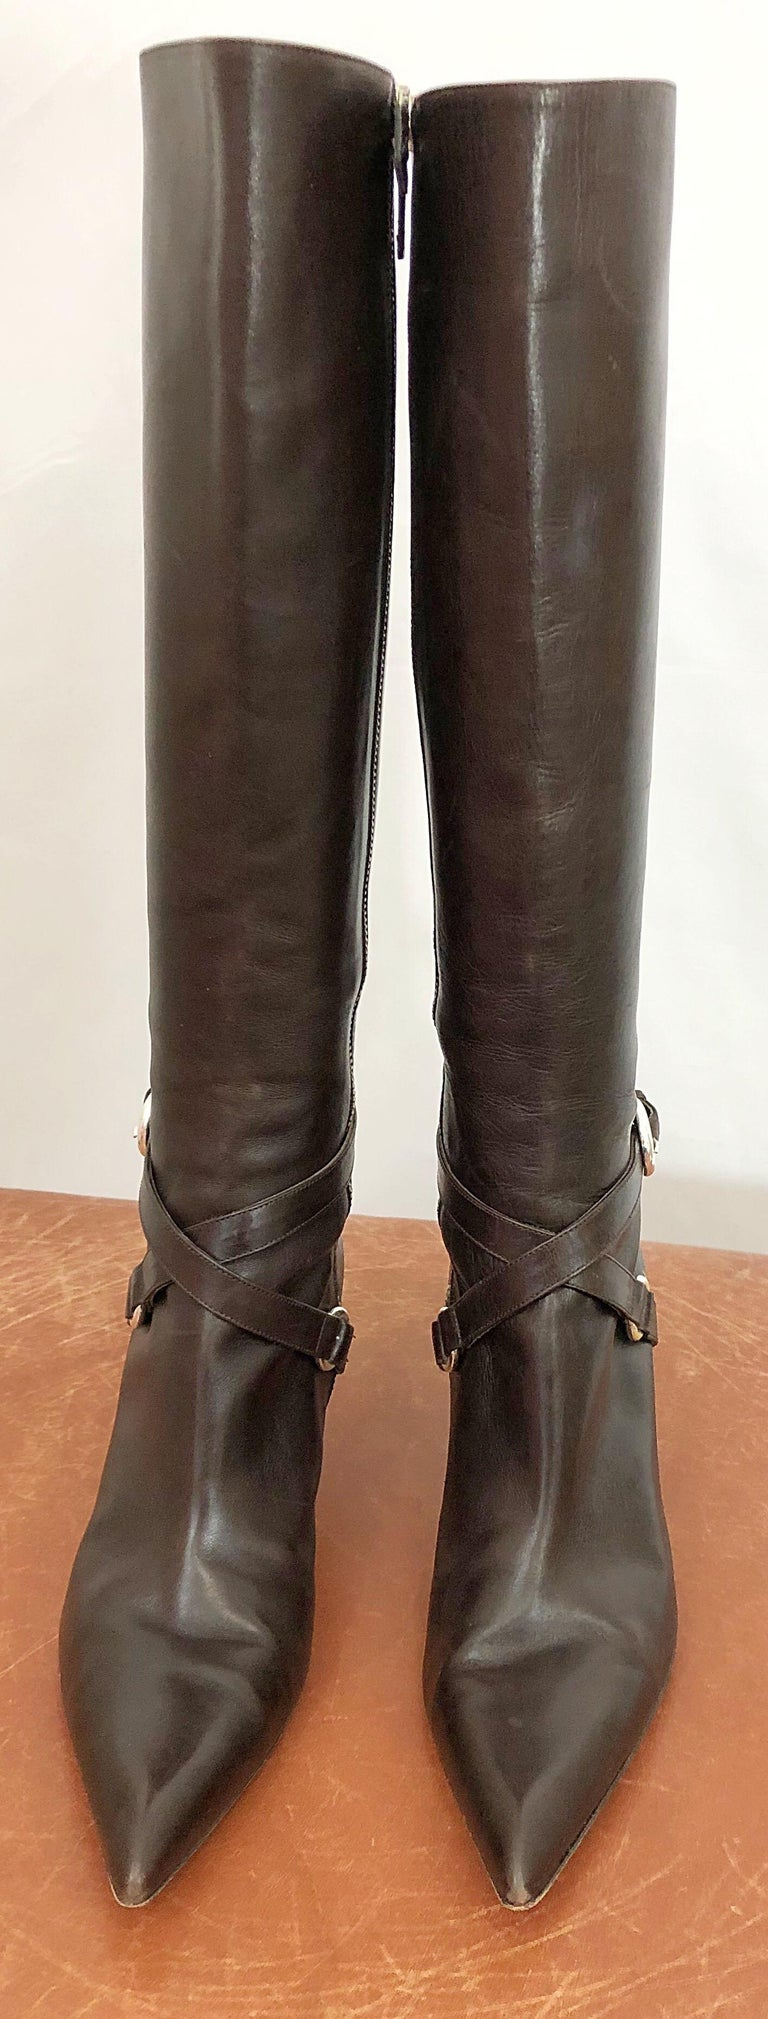 Michael Kors Collection Size 8 Chocolate Brown Leather High Heel Knee High Boots For Sale 4